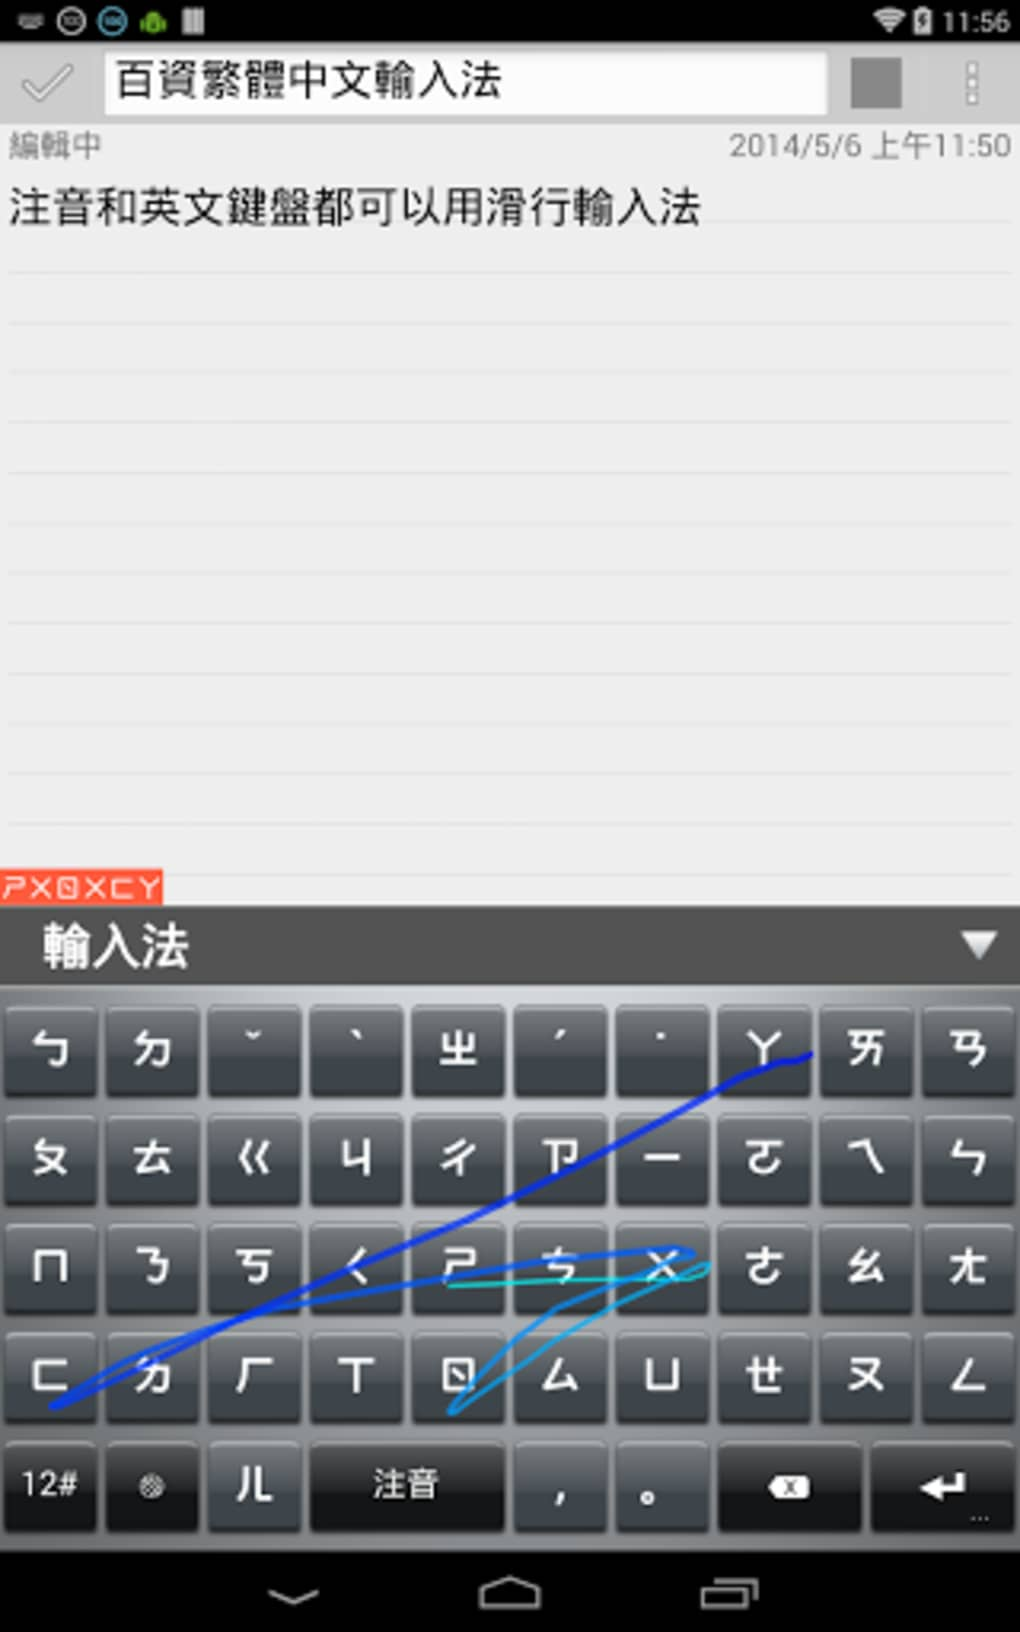 Traditional Chinese Keyboard For Android Download